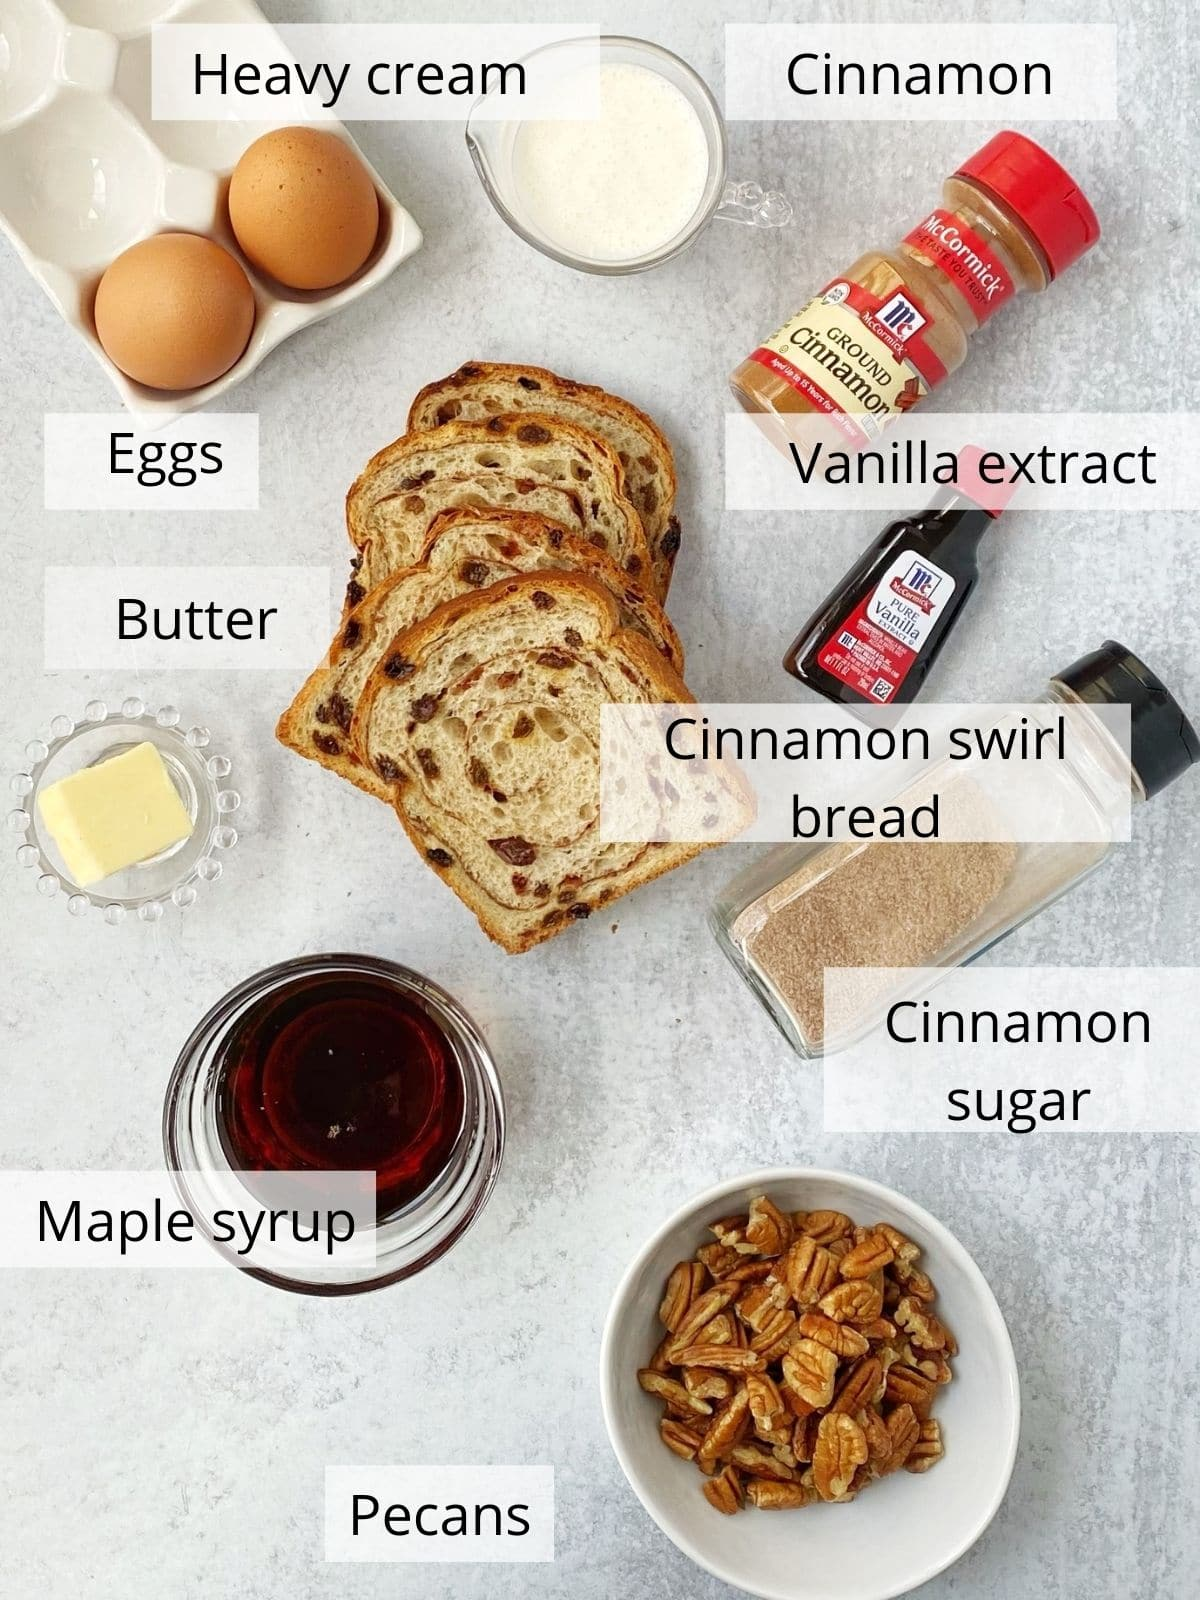 ingredients for french toast including bread, eggs, cream, butter, syrup, pecans, and seasonings